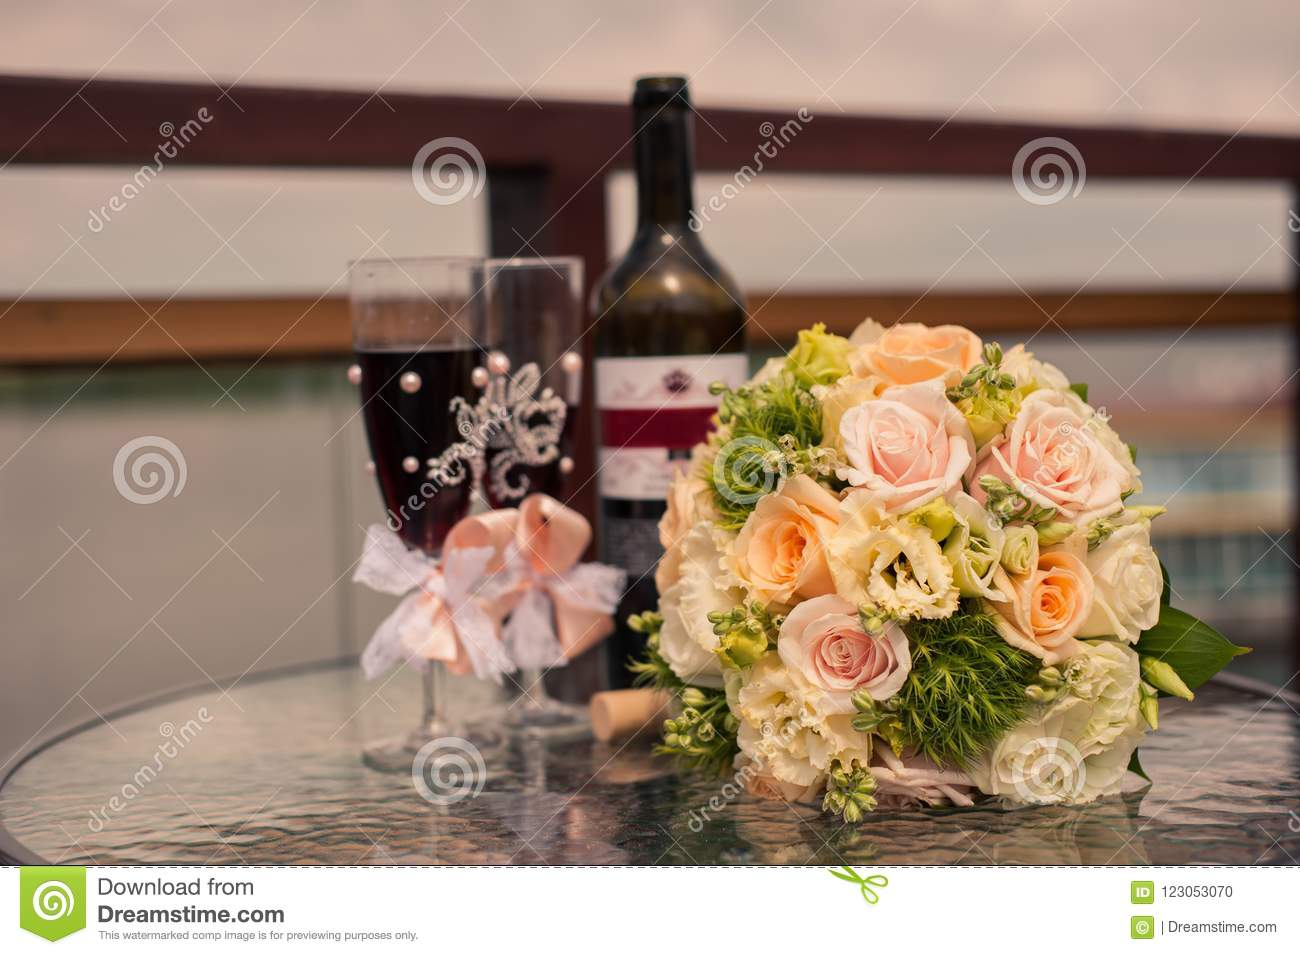 White And Green Wedding Bouquet And Glasses With Bottle Of Wine